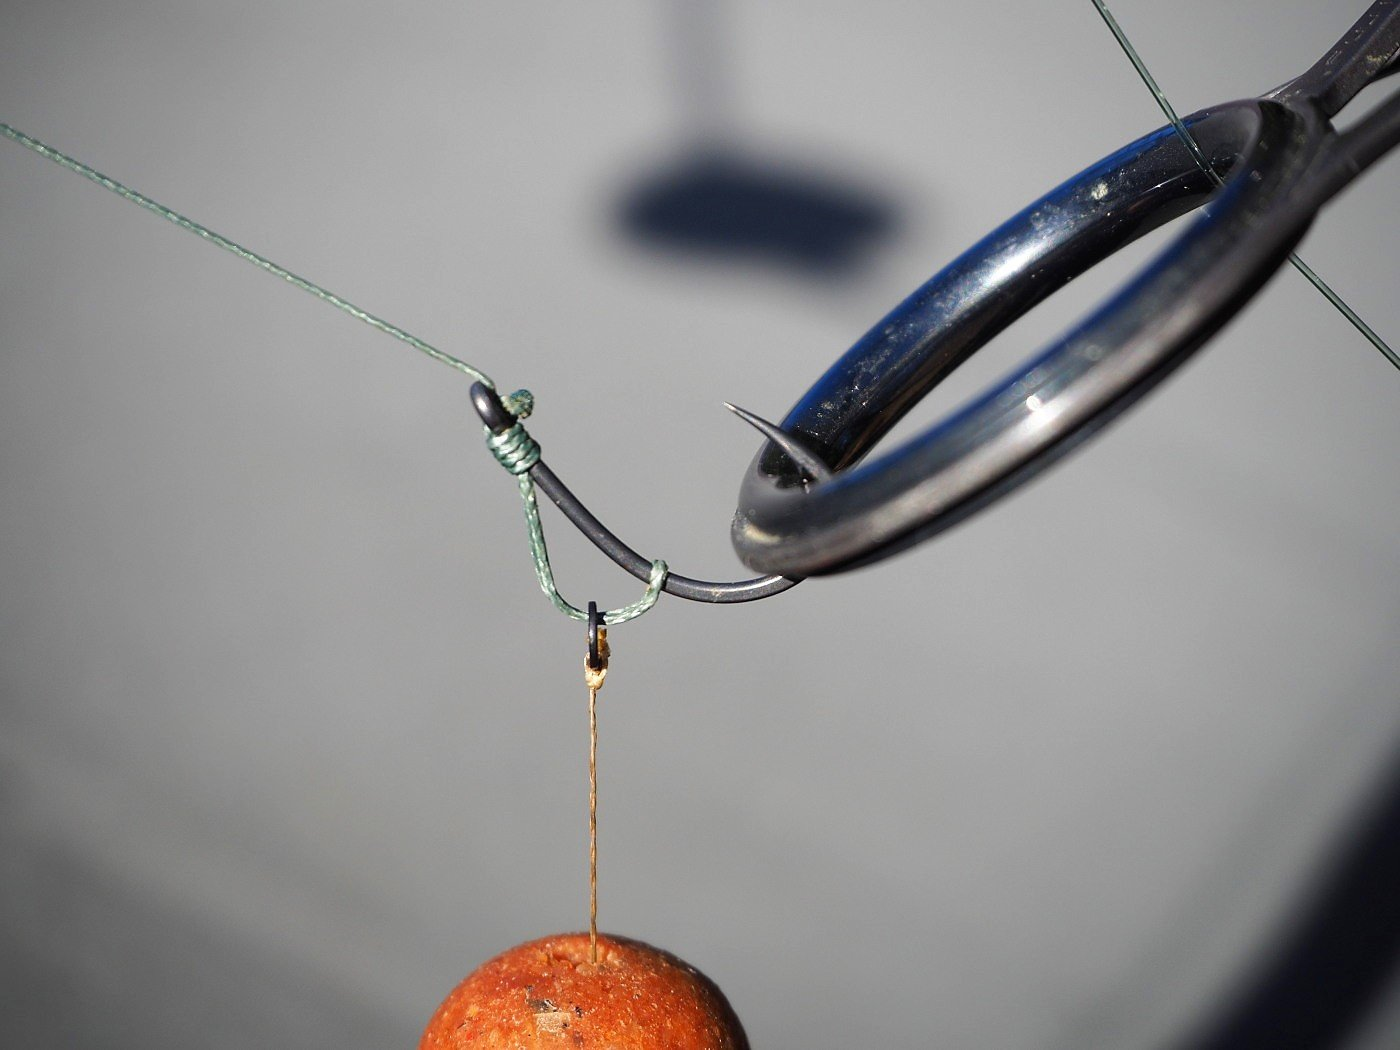 rig with carp and cat hooklink